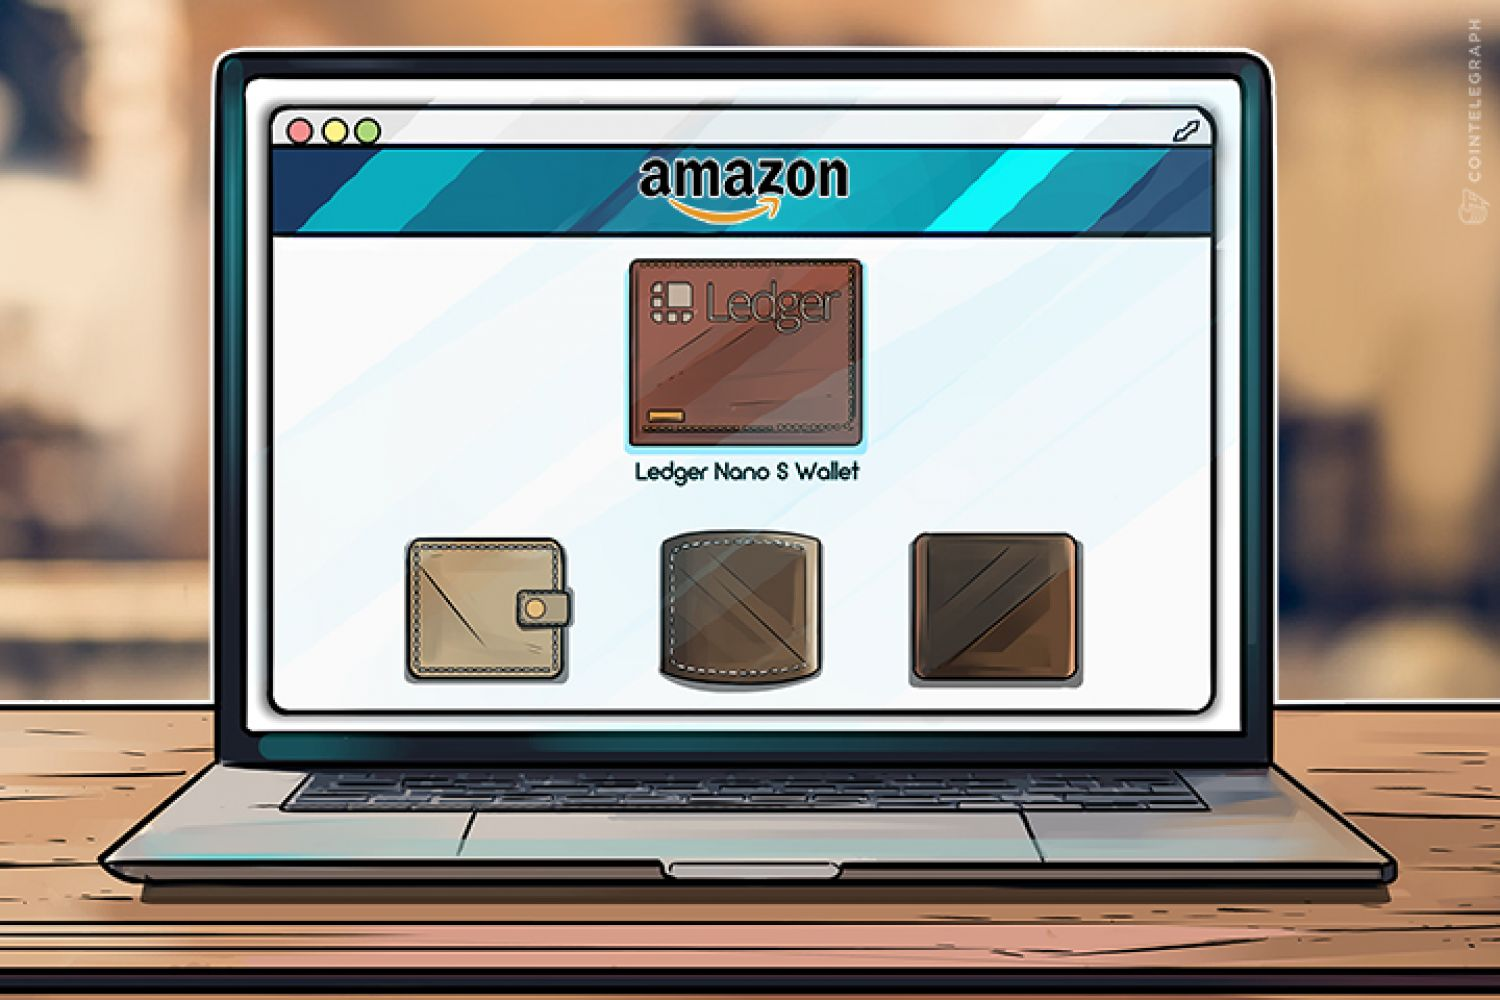 Hardware wallets on Amazon